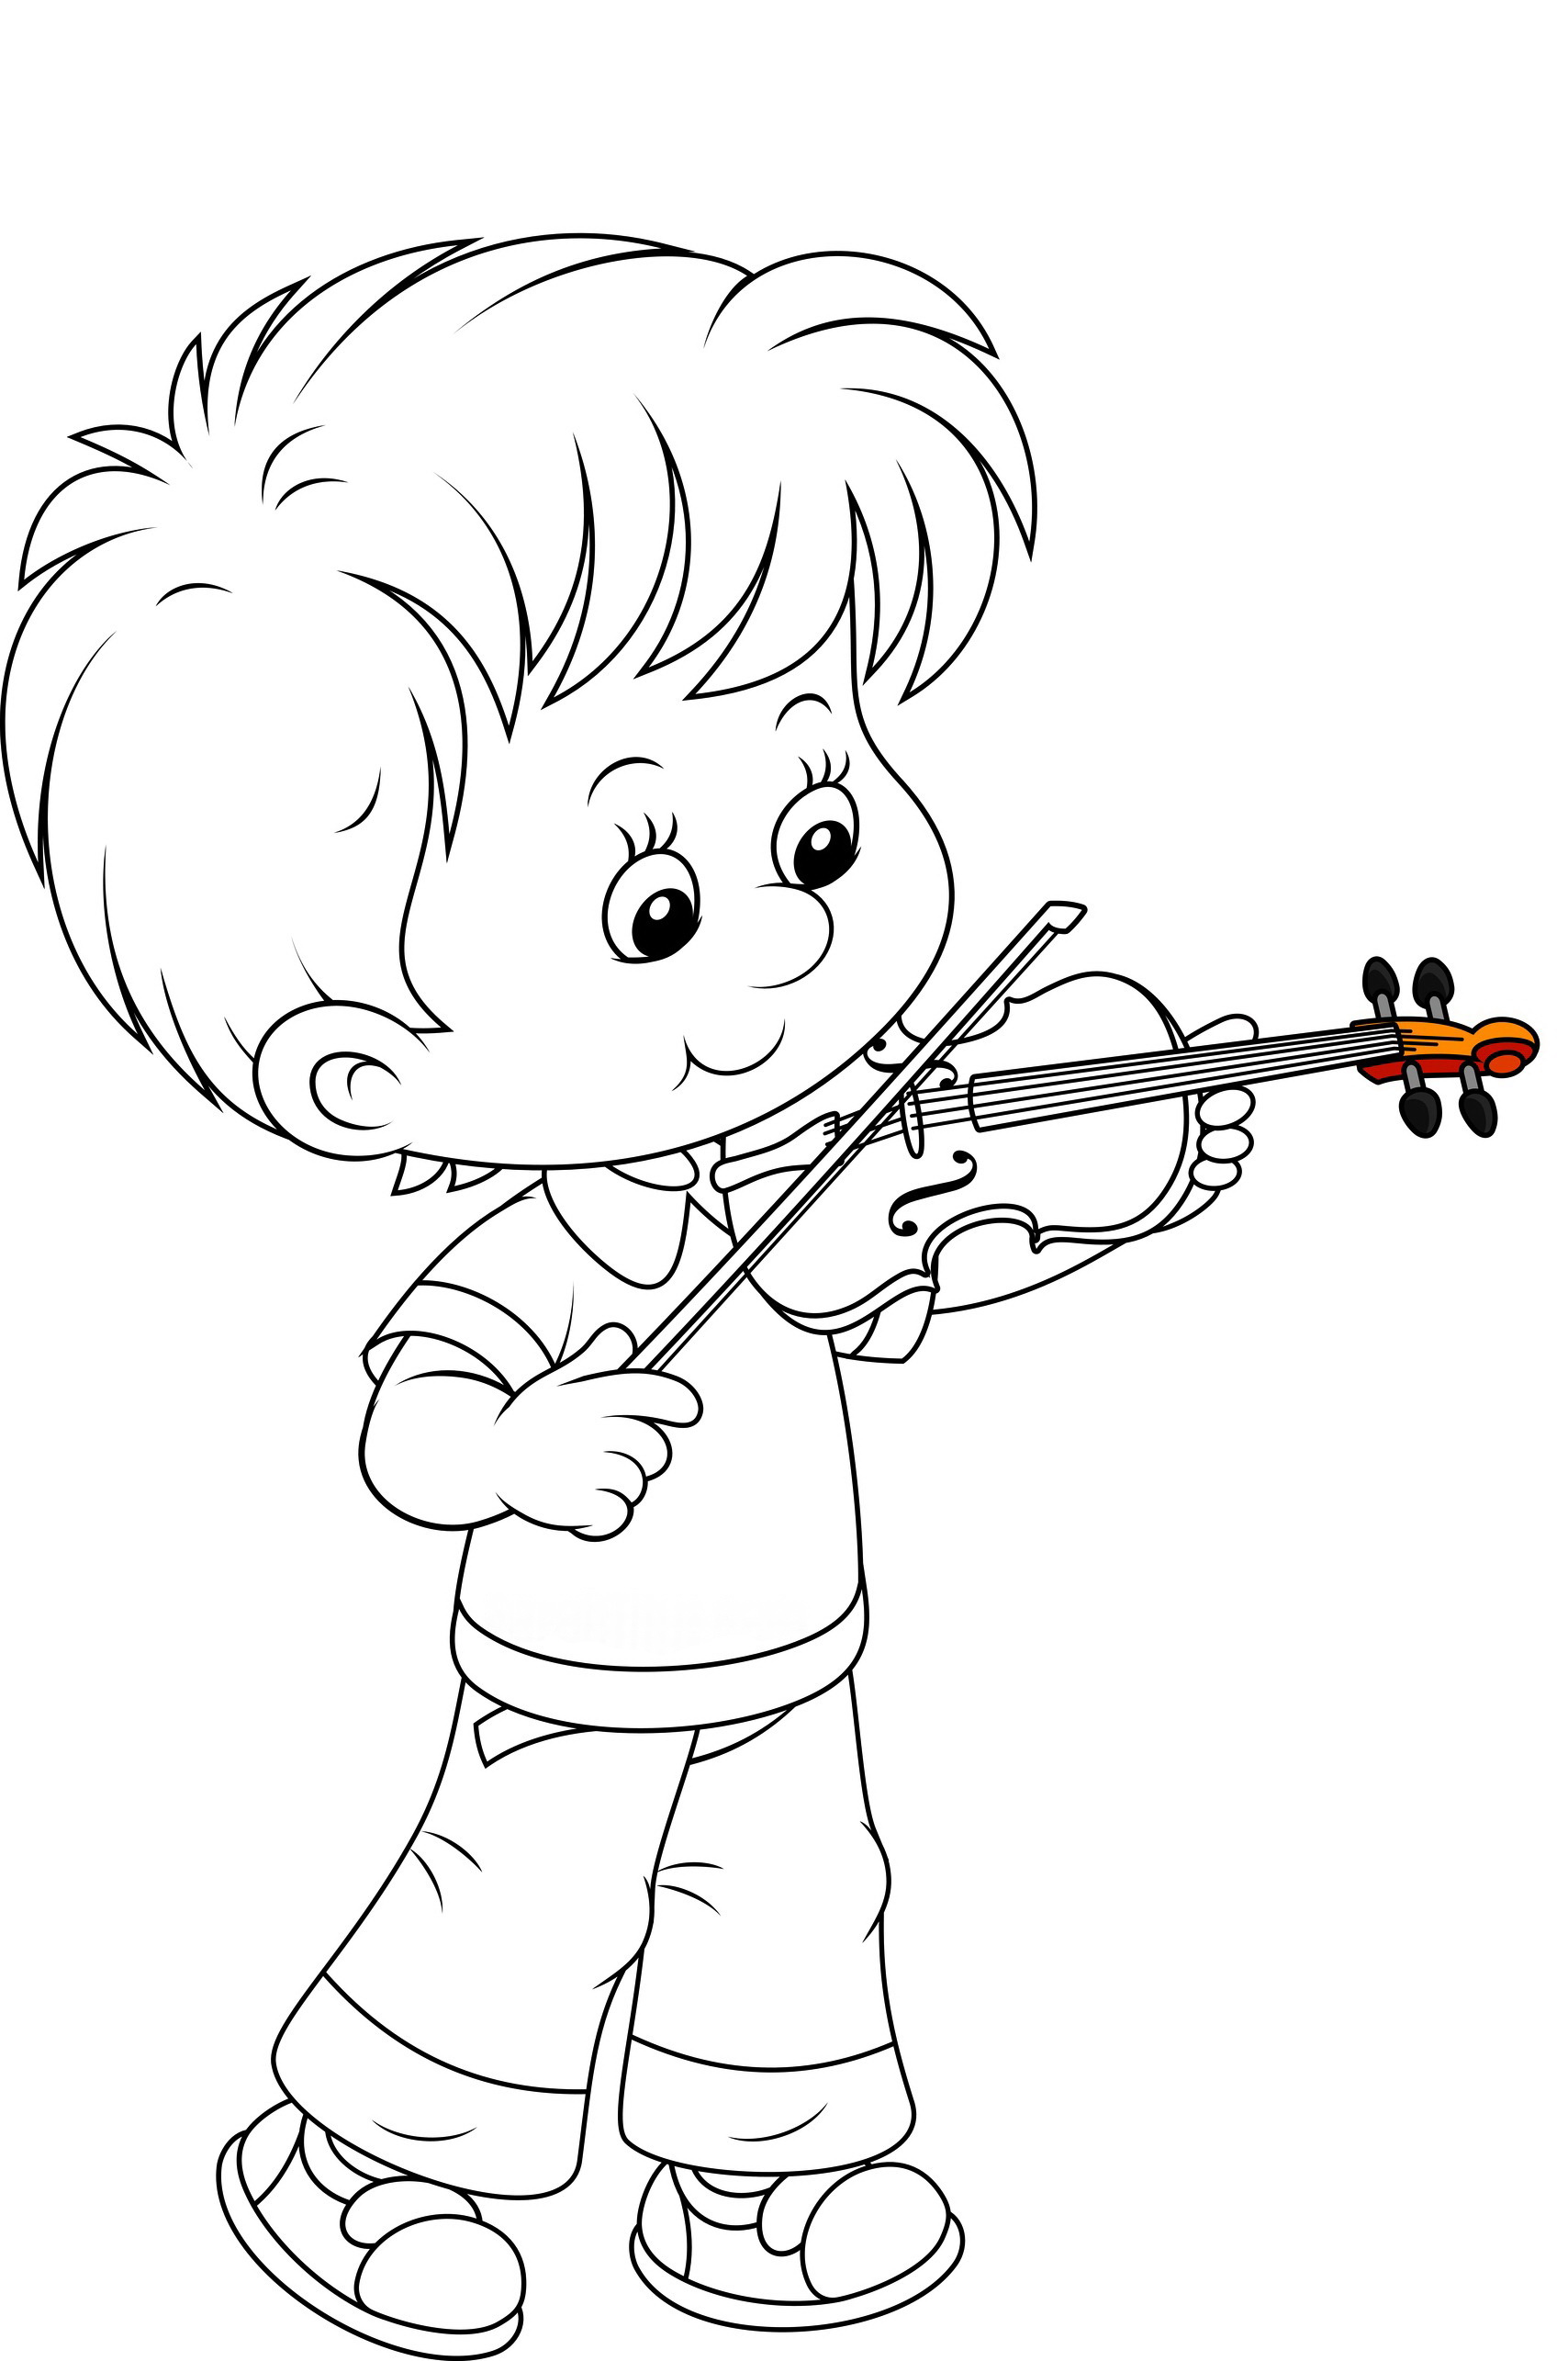 boy coloring pages free printable boy coloring pages for kids cool2bkids coloring pages boy